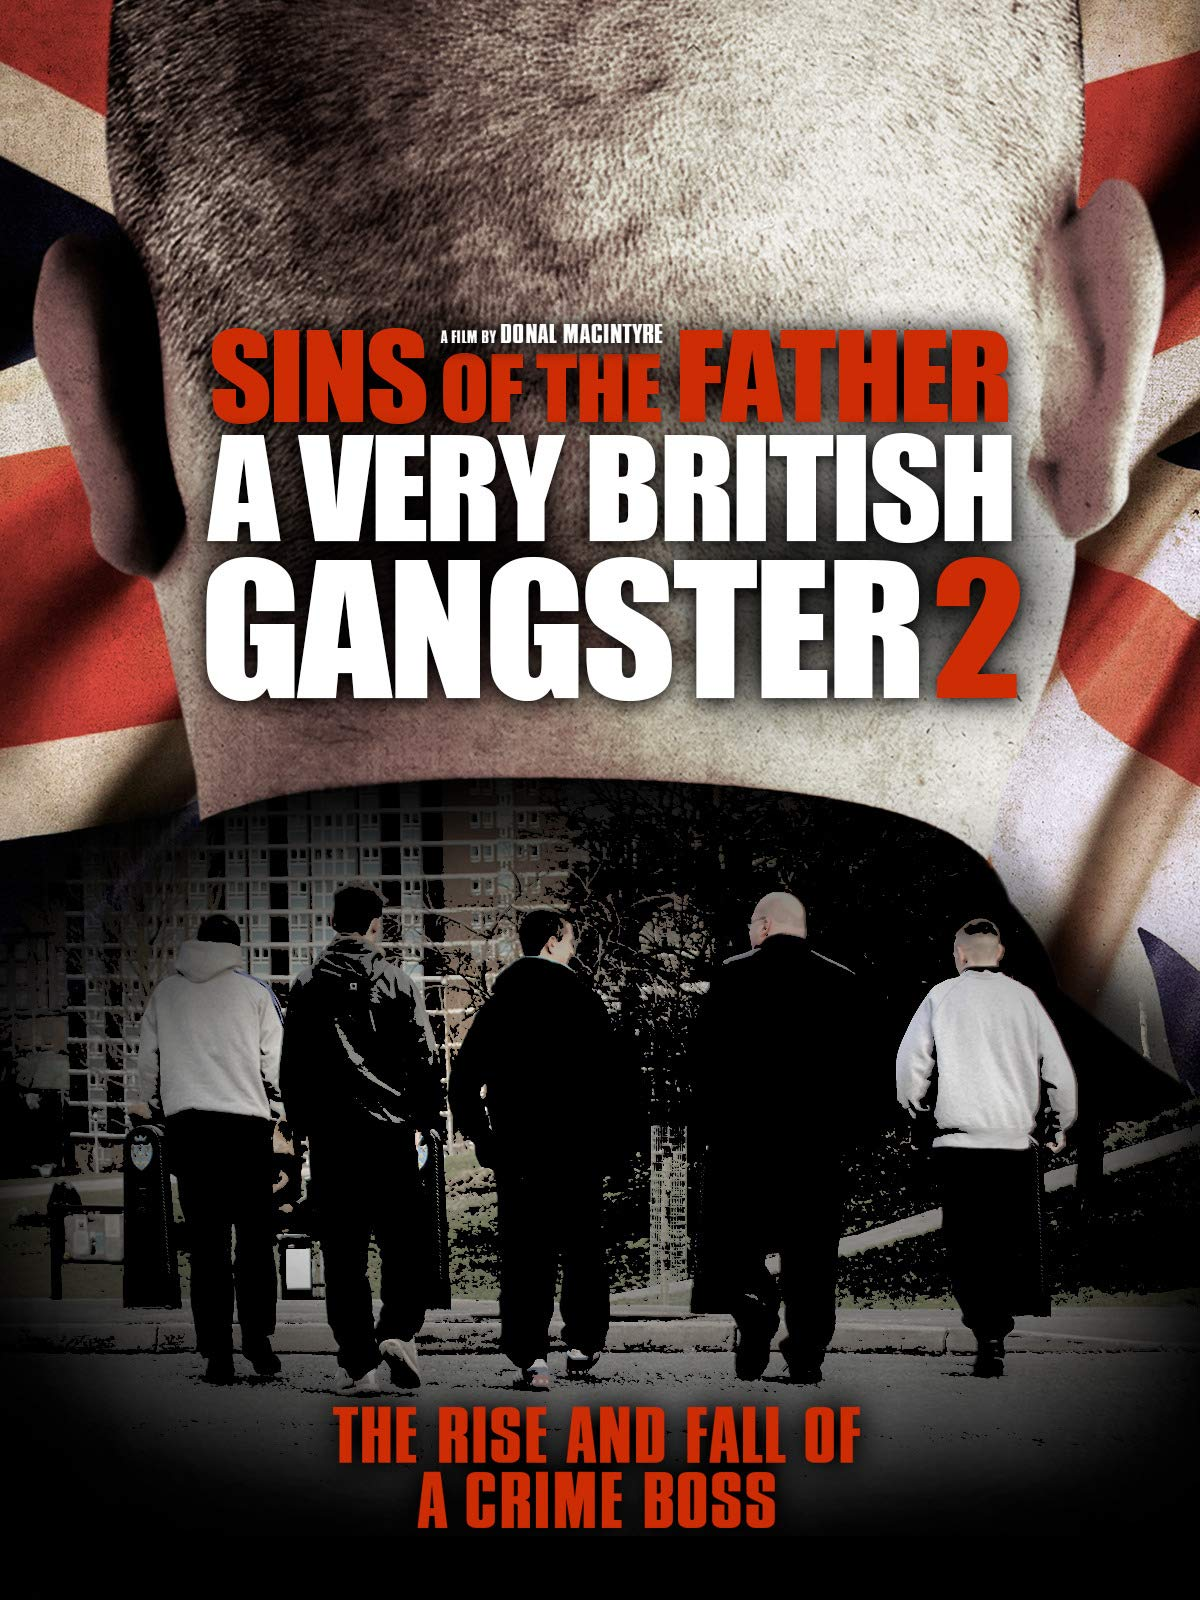 Sins of the Father - A Very British Gangster 2